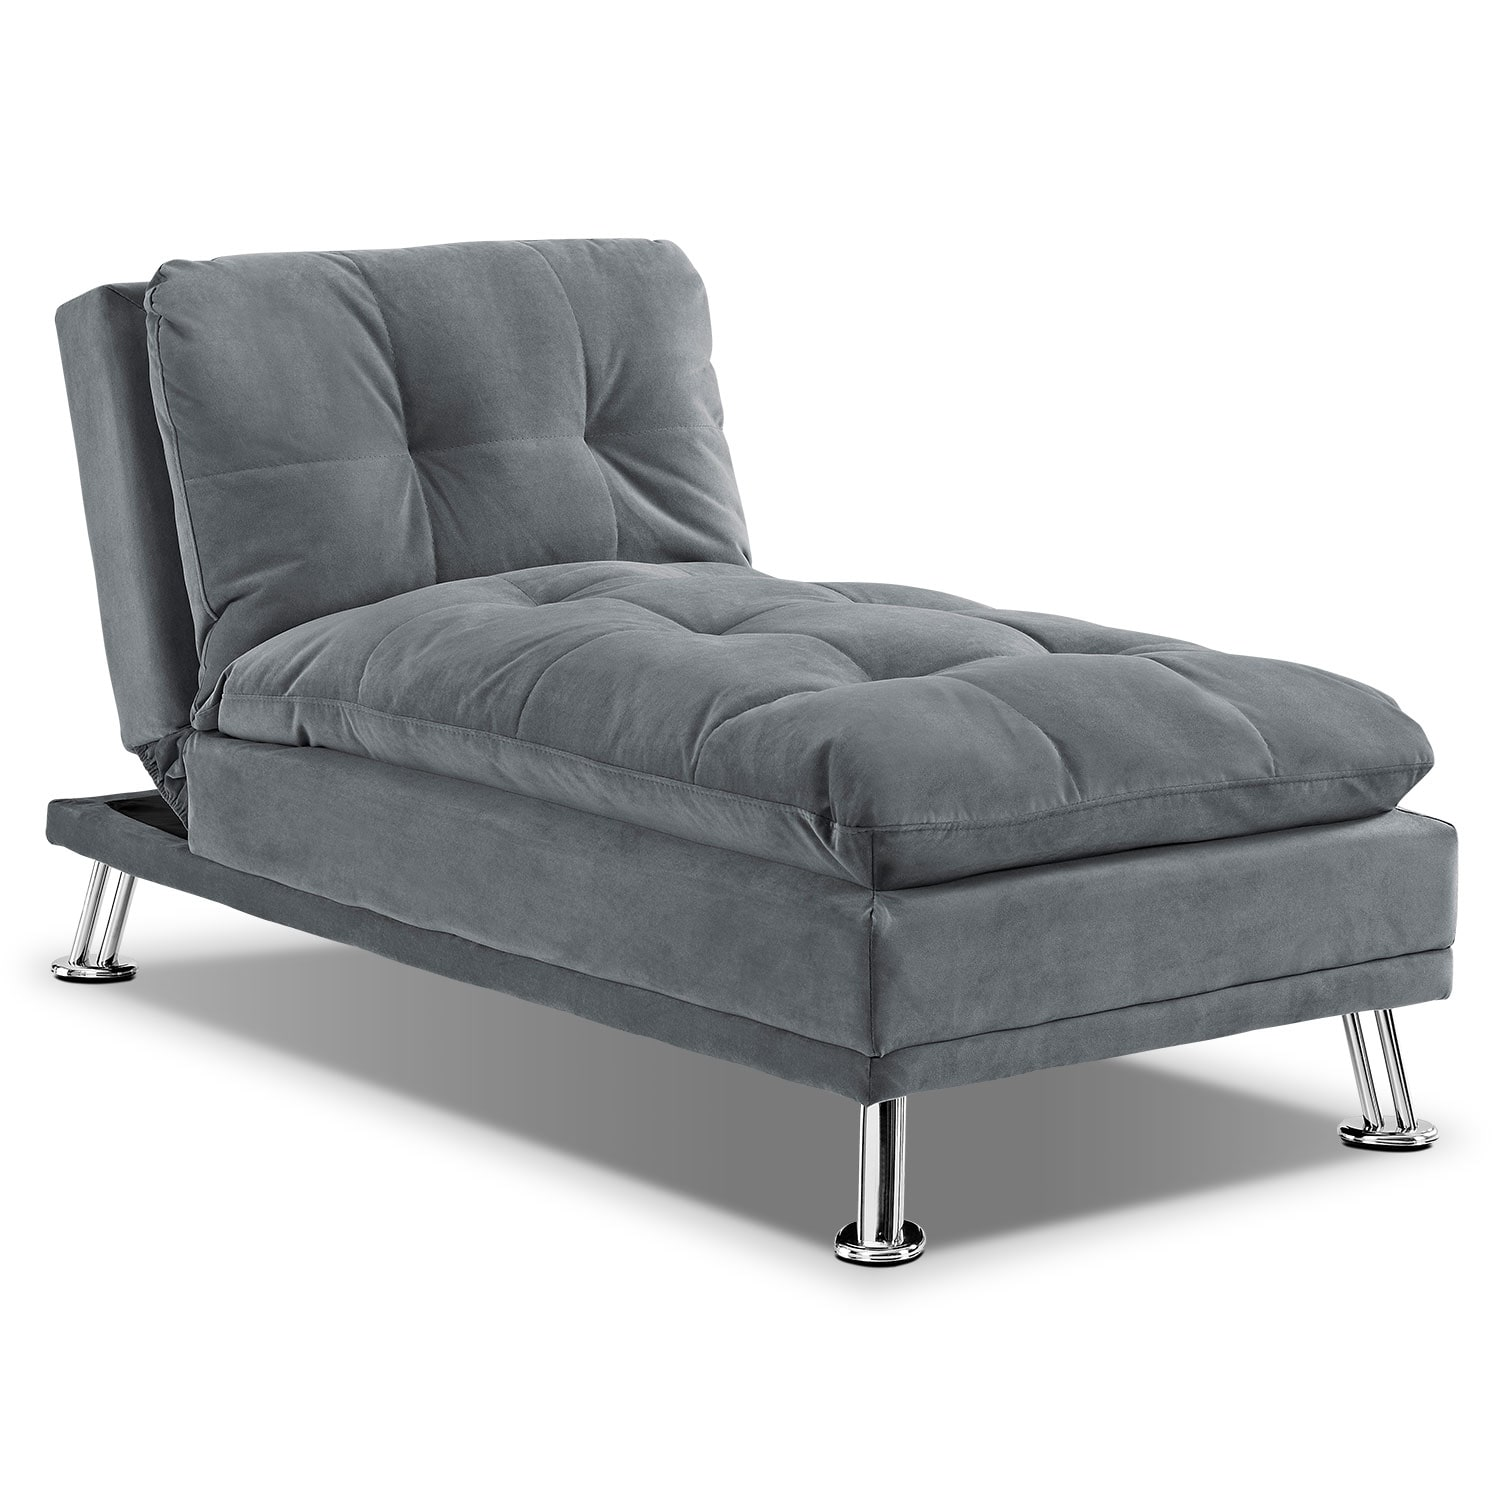 [Waltz Gray Chaise]